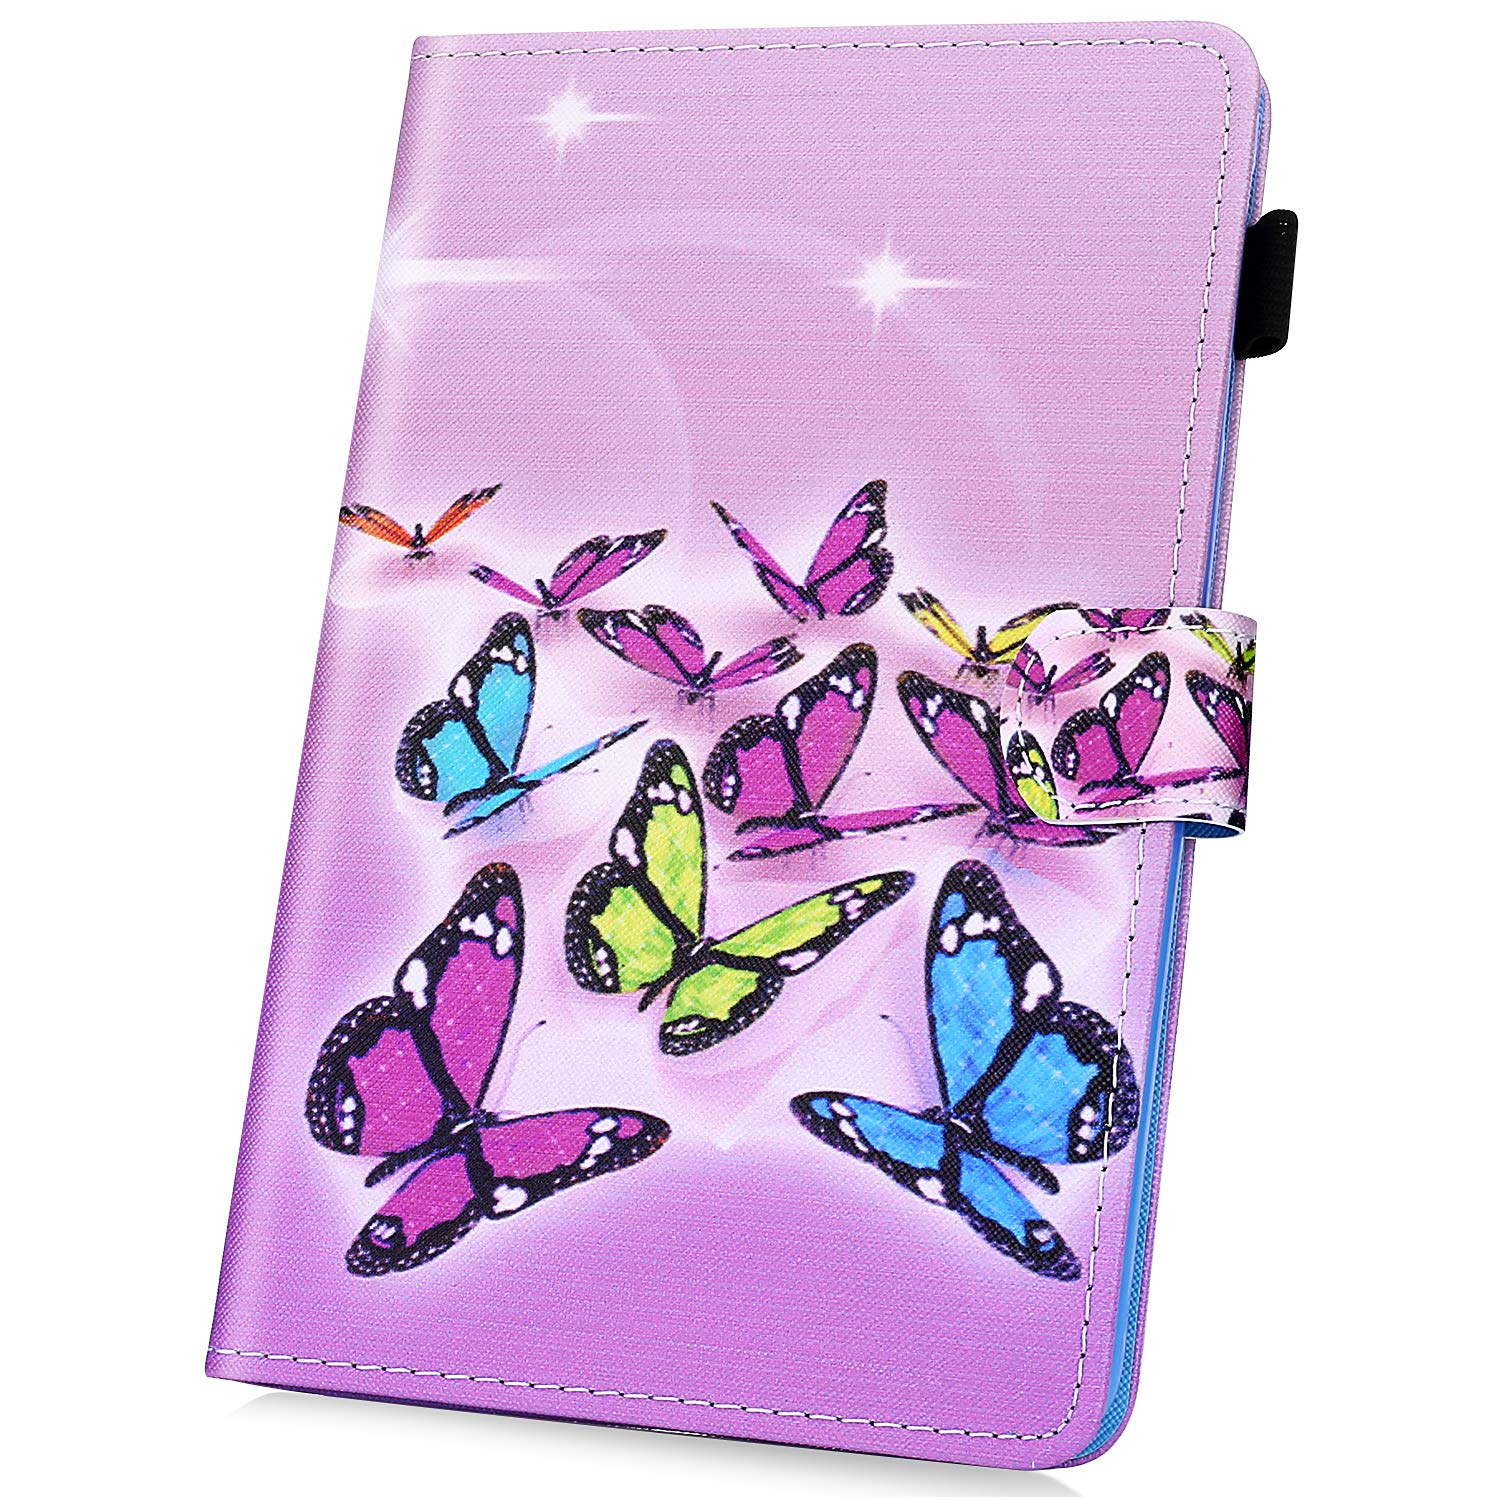 Kindle Paperwhite 1/2/3 Folio Case, JAWSEU PU Leather Flip Case Smart Case with Magnetic Closure Wake Up/Sleep Stand Function Cover for  Kindle Paperwhite 1/2/3, Colorful Owl